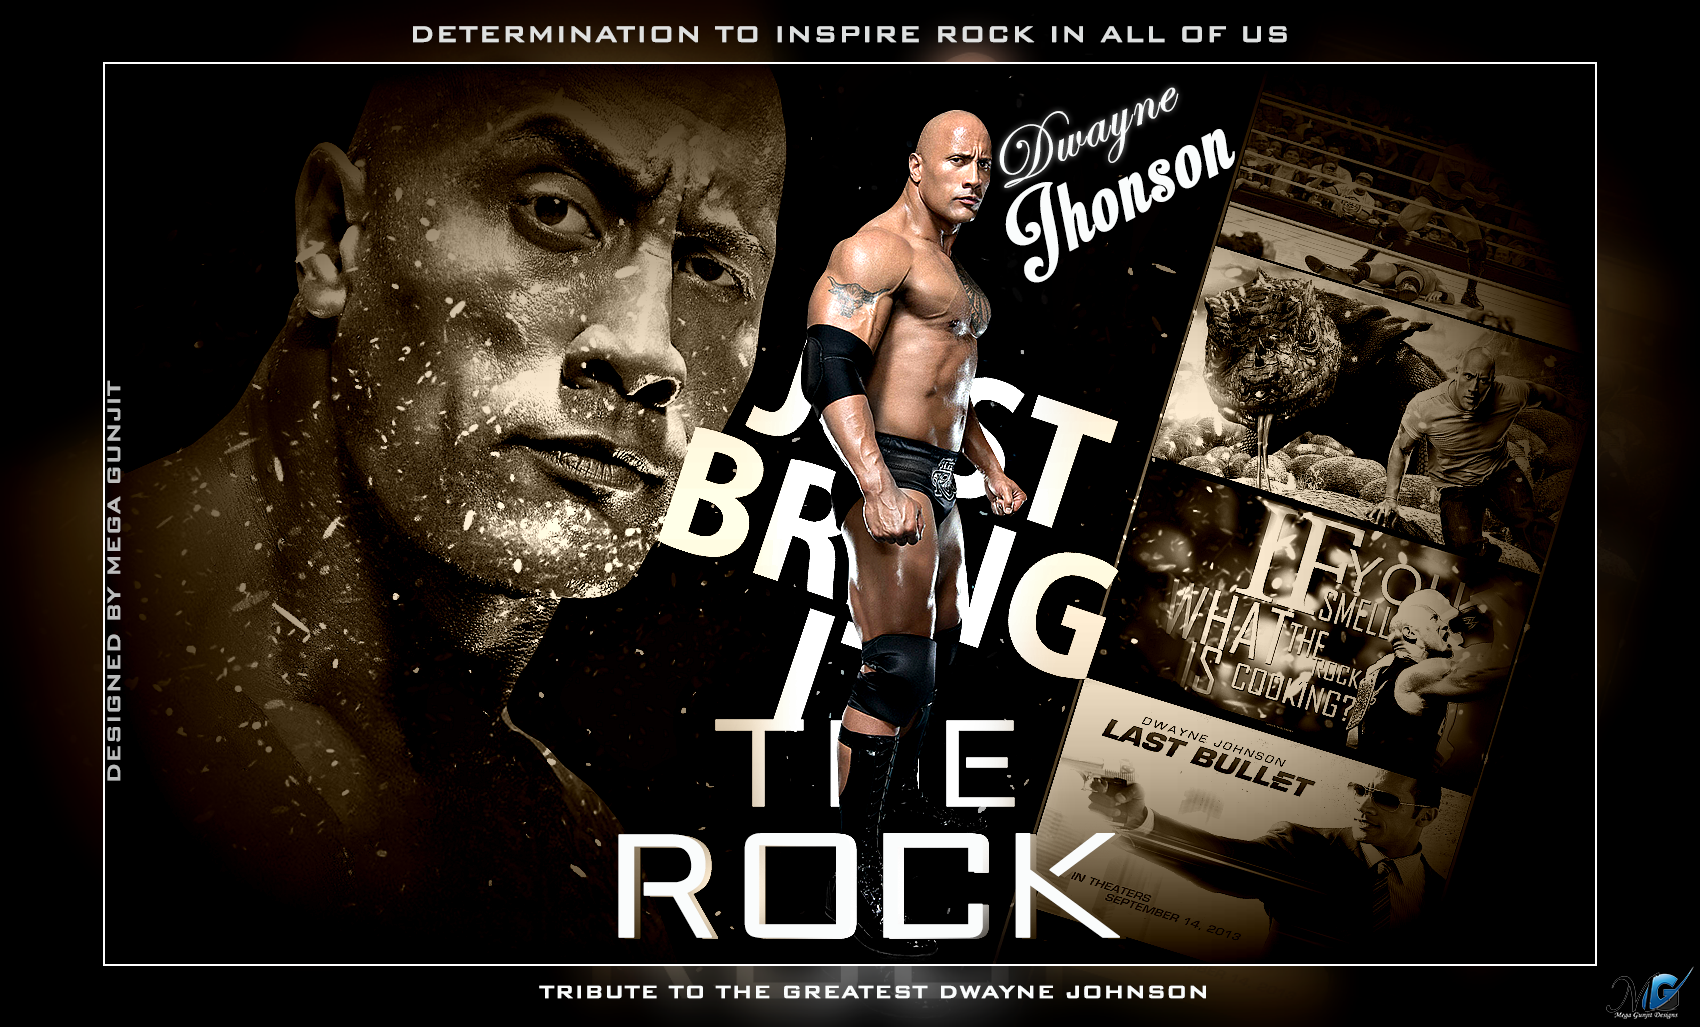 wwe hd wallpapers - the rock tribute newmegagunjit on deviantart